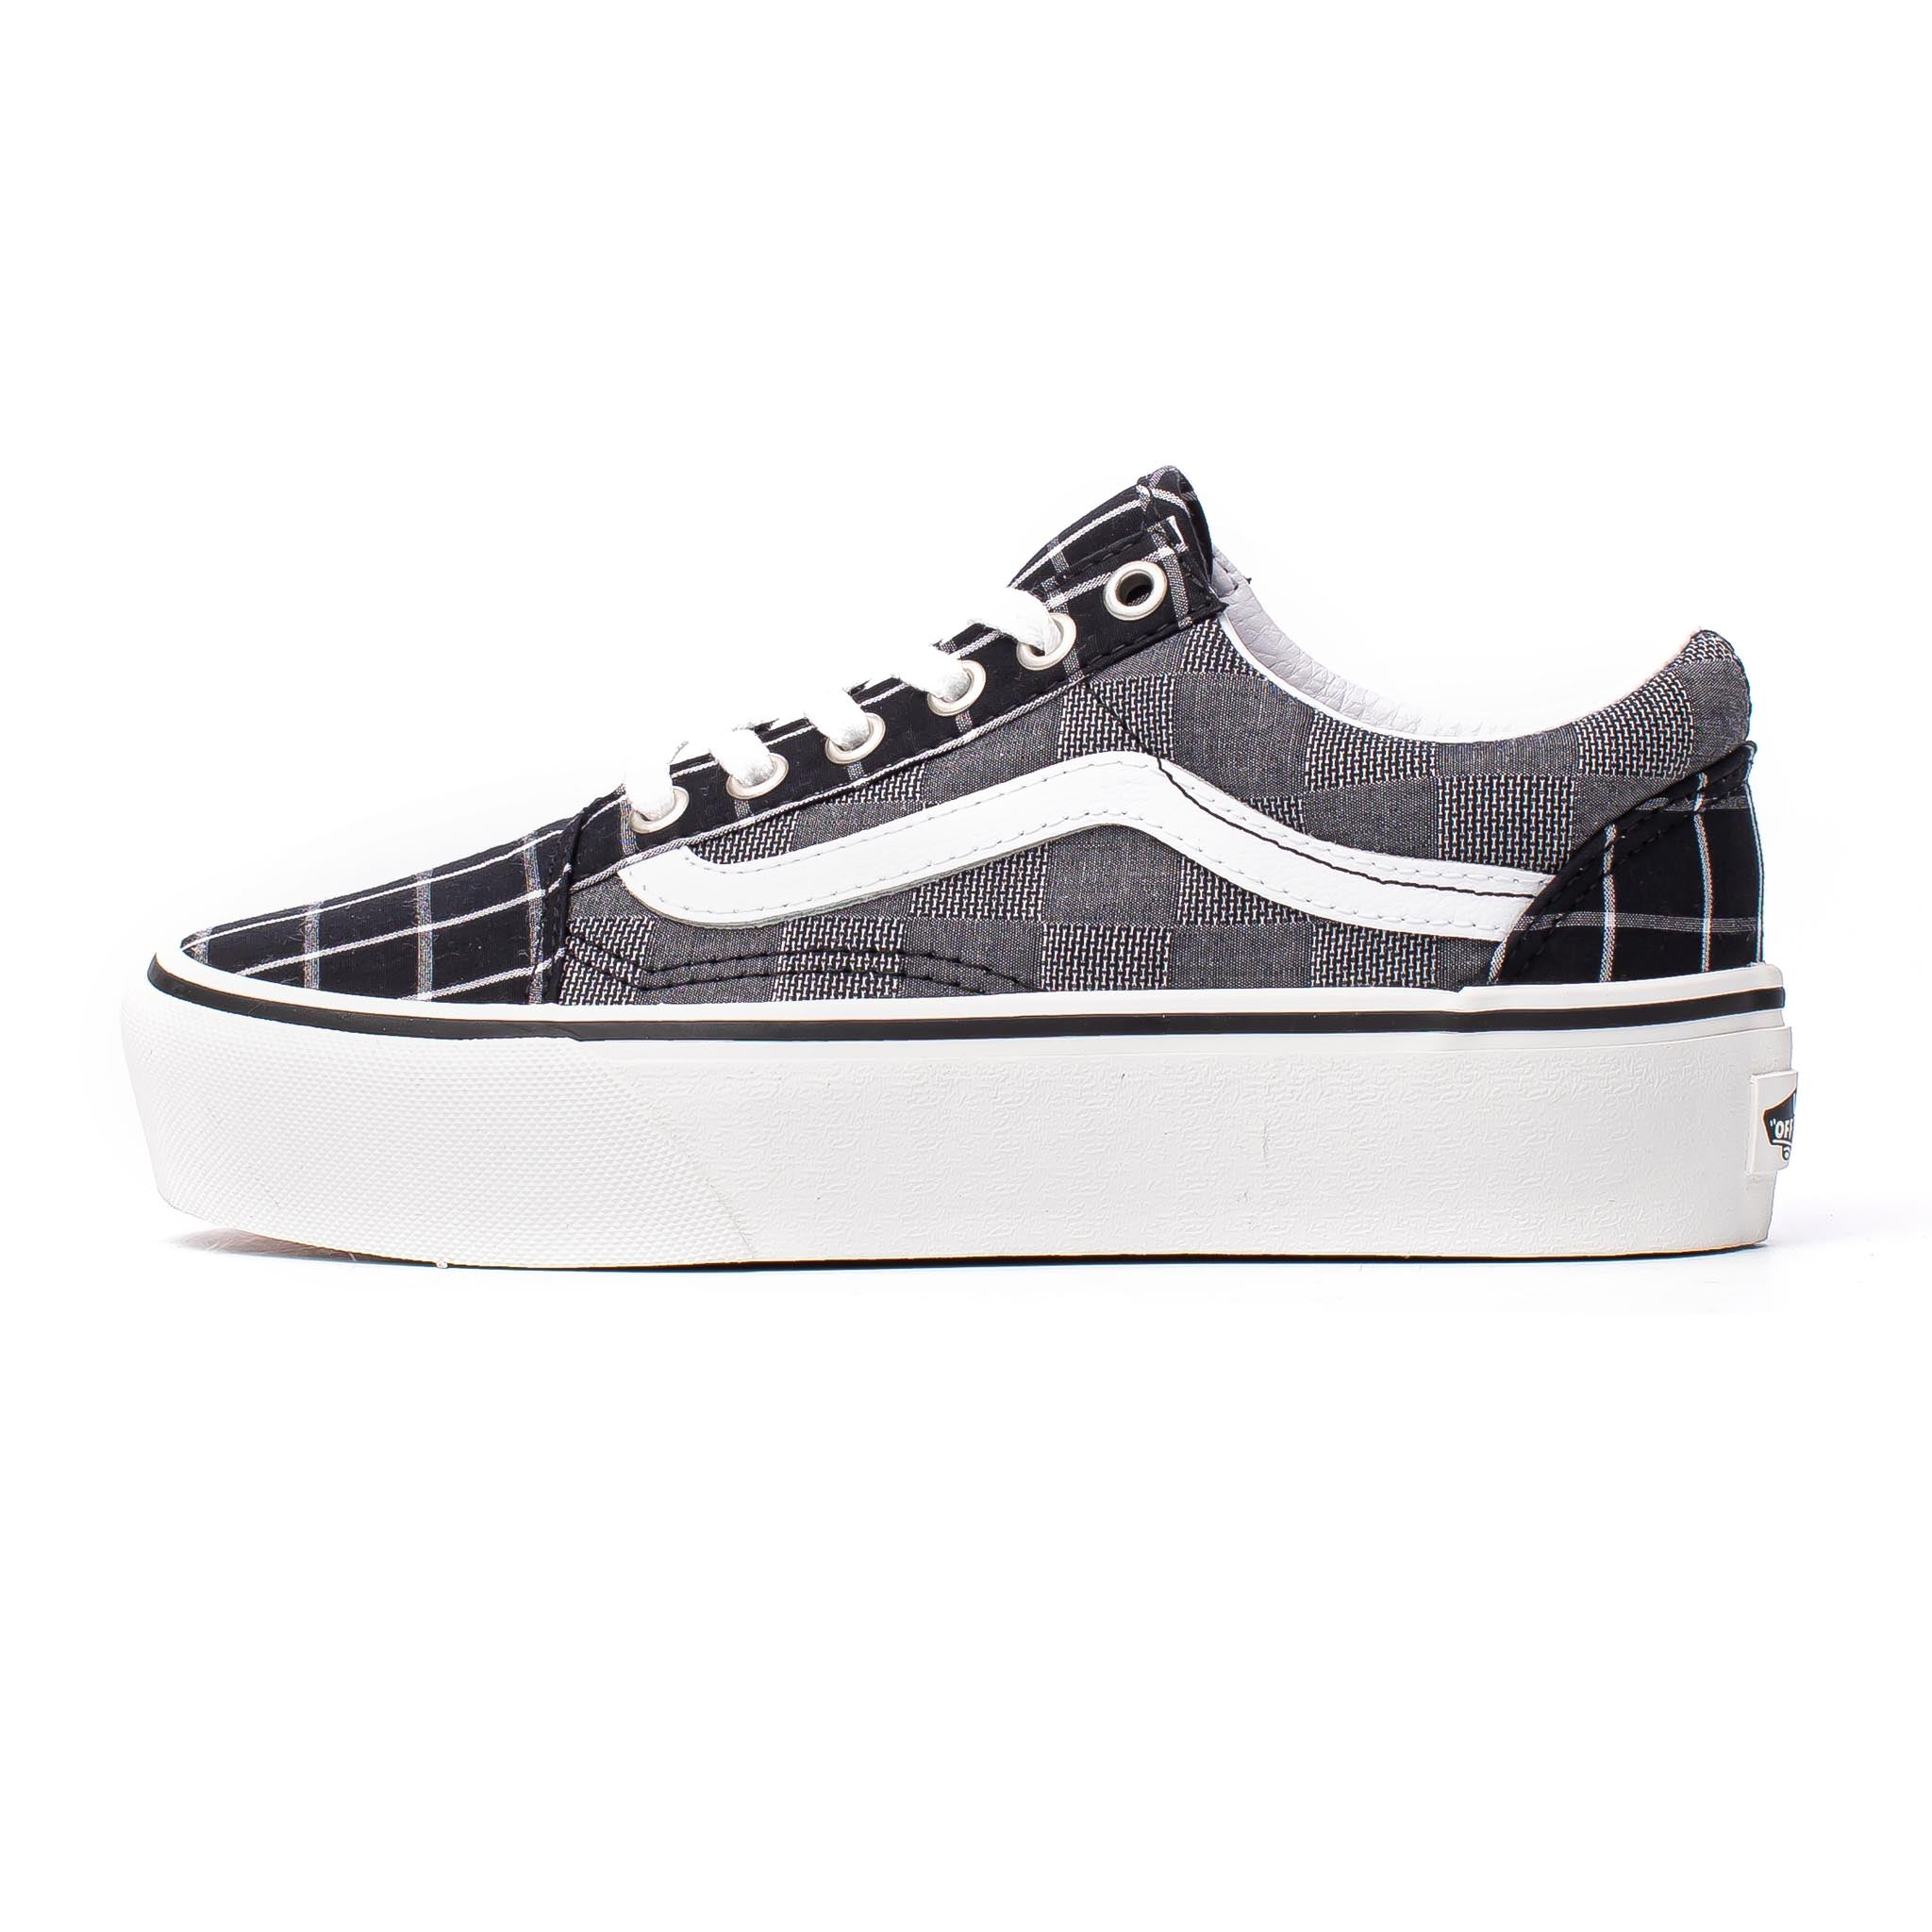 Vans Old Skool Platform Black/Check